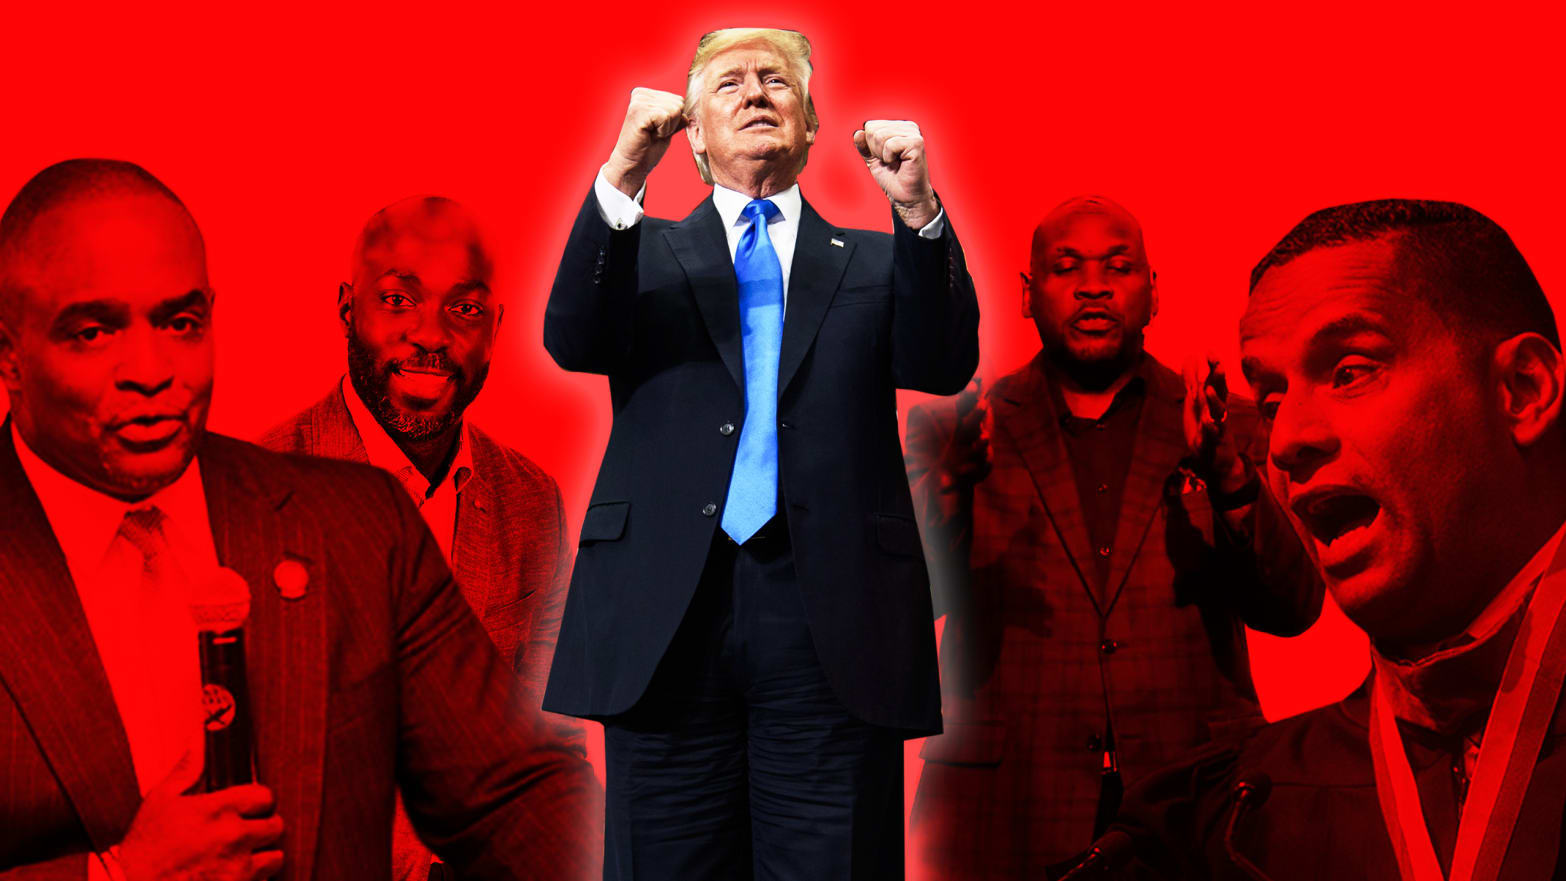 These African American Pastors Who Sucked Up to Donald Trump